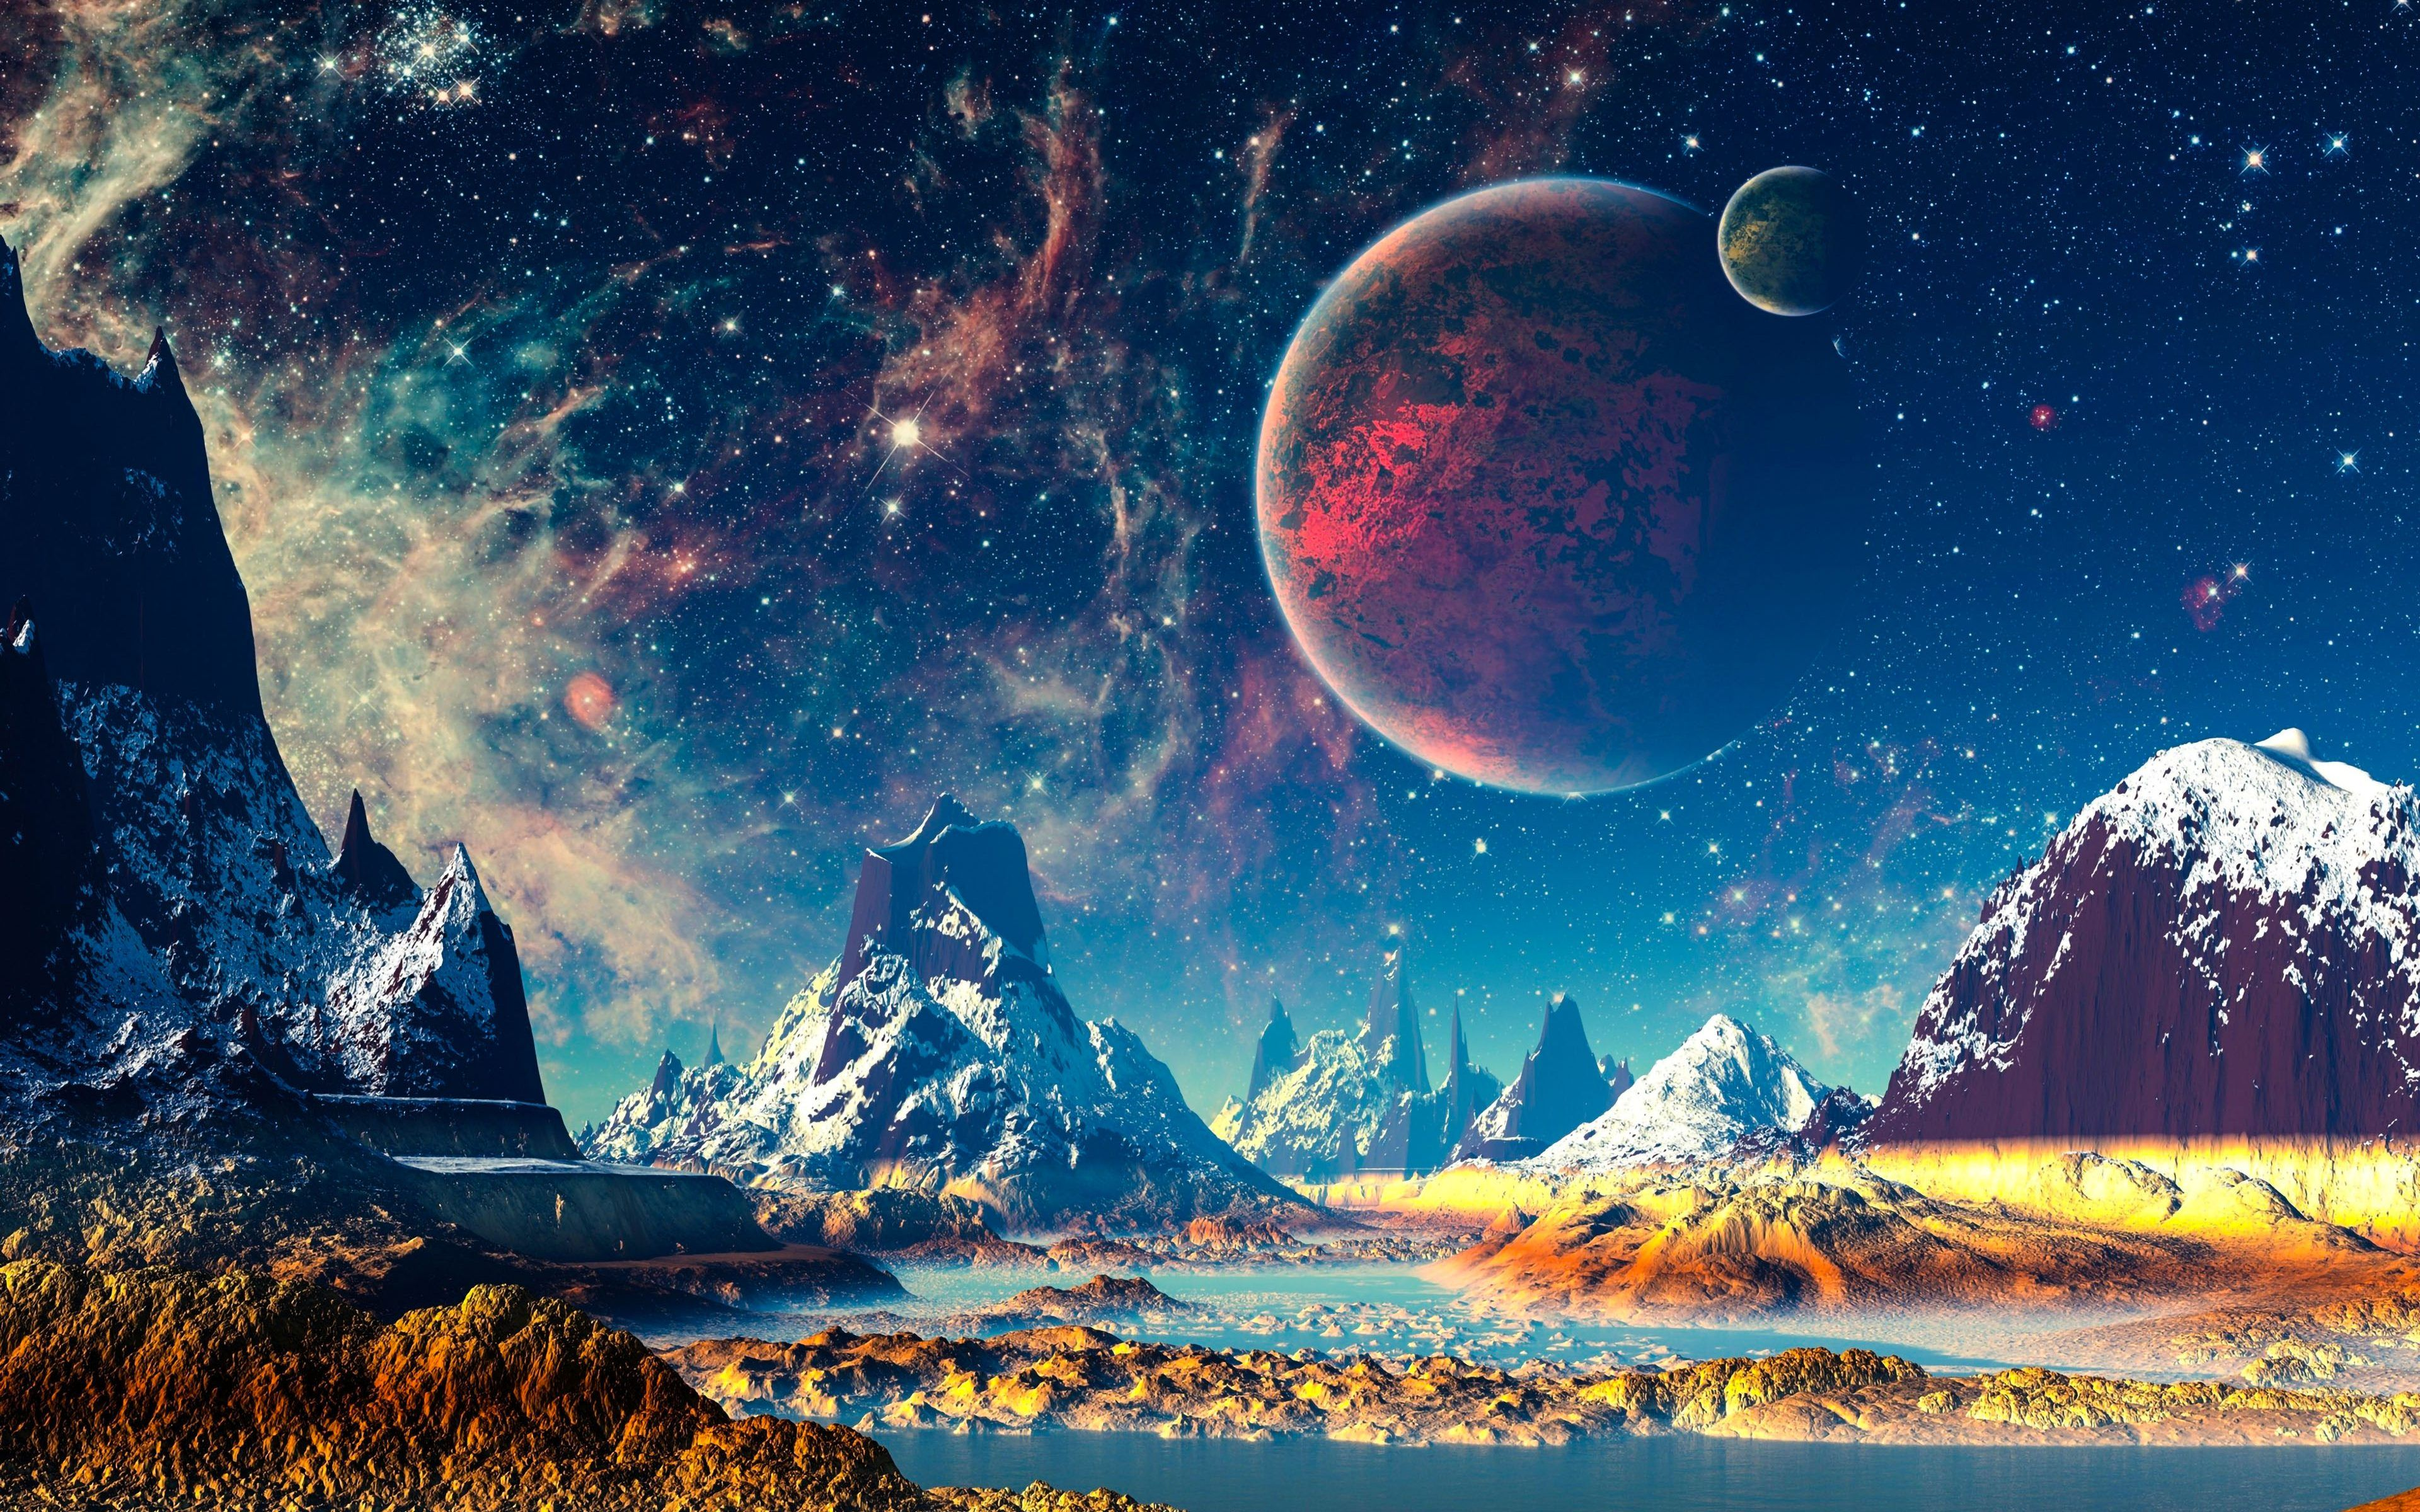 A Super Detailed Fantasy World Wallpaper Been There In My Wallpapers Collection Since 2 Years 3840x24 In 2020 Landscape Wallpaper Digital Wallpaper Fantasy Landscape